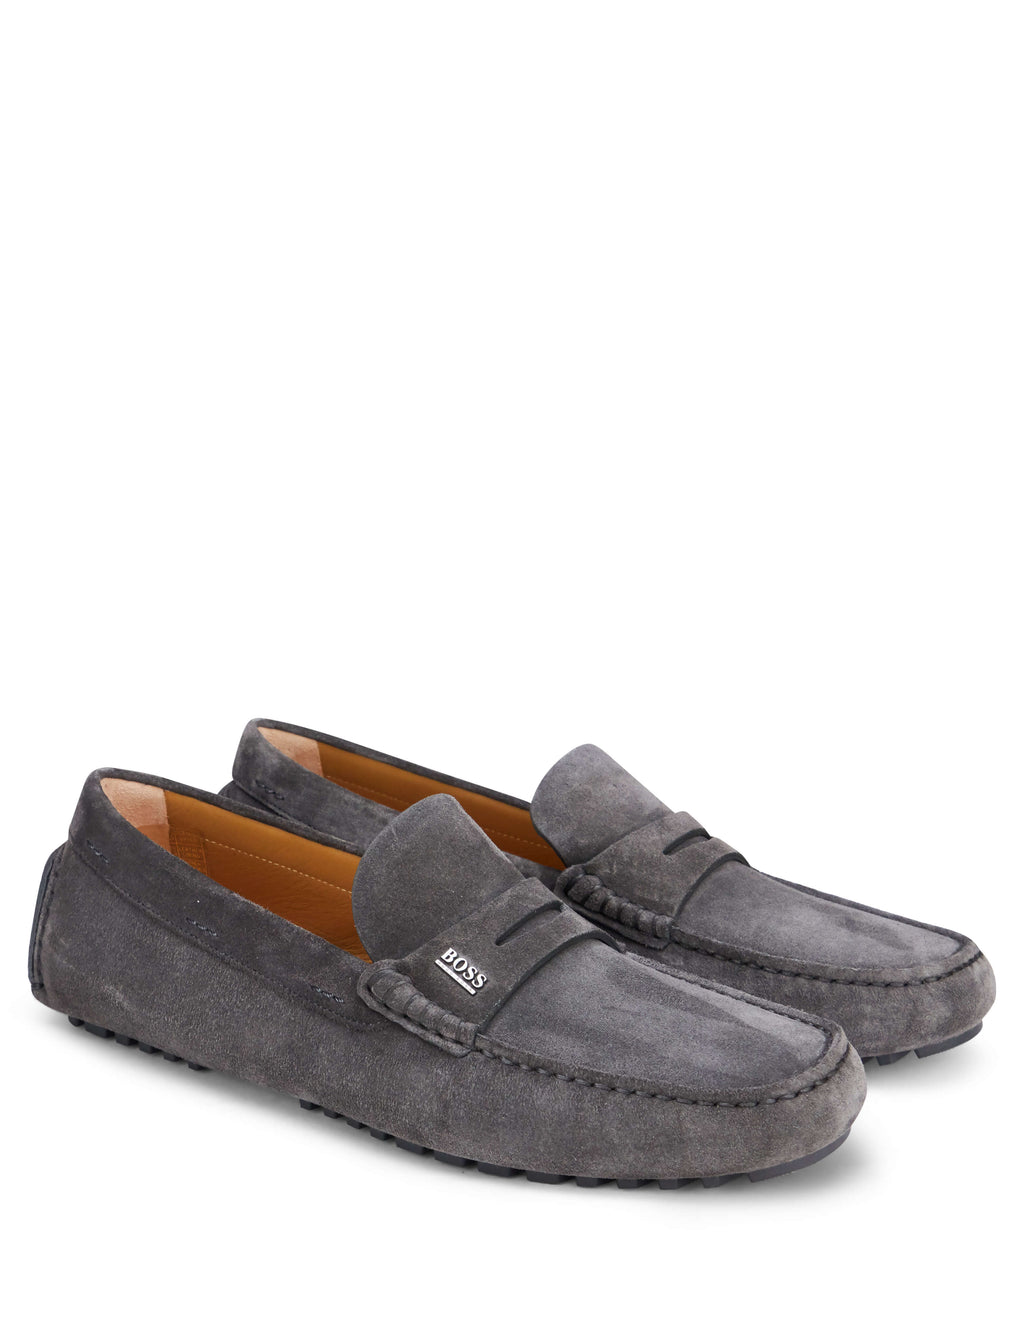 BOSS Men's Giulio Fashion Grey Suede Driver Moccasin Loafers 50403068022